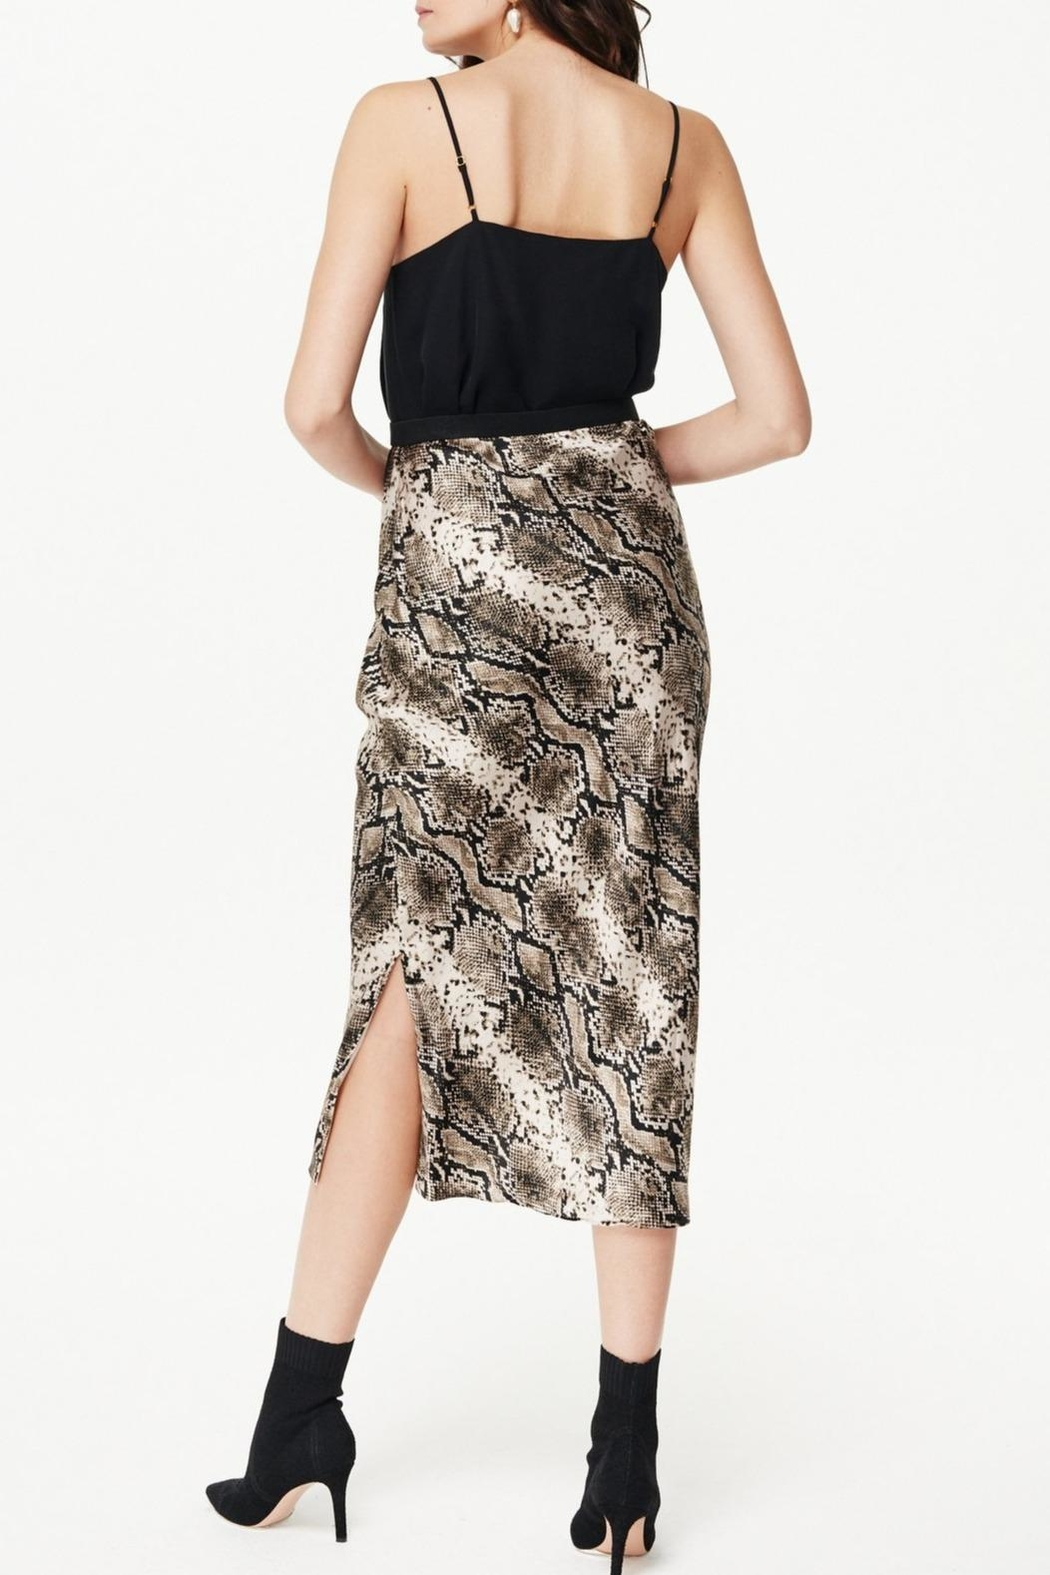 Cami NYC Jessica Skirt Snake - Front Full Image